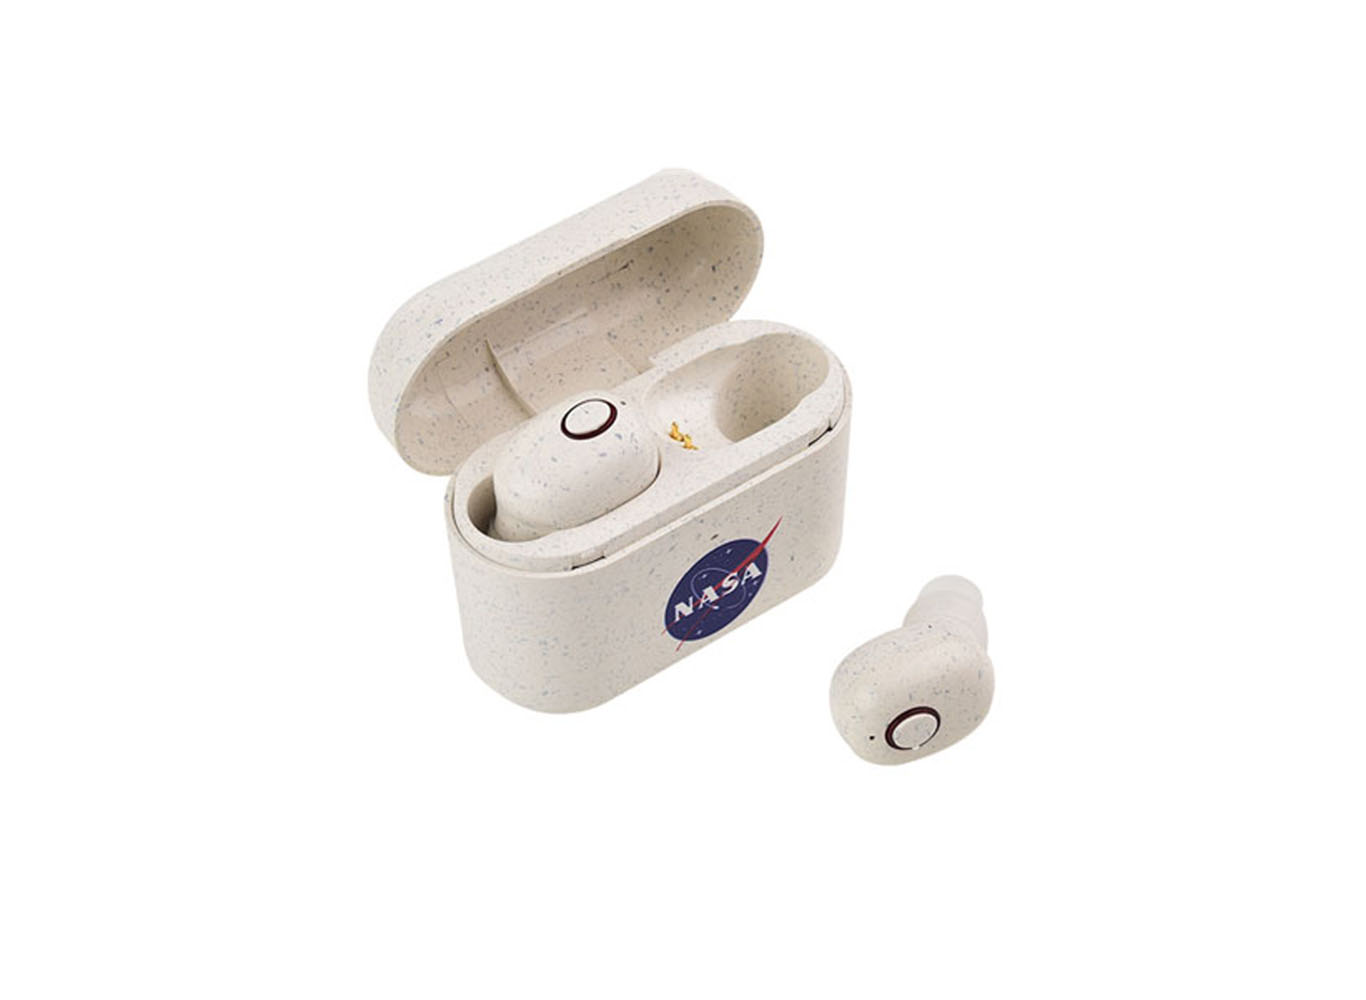 Blutooth 5.0 PLA Eco Earbuds